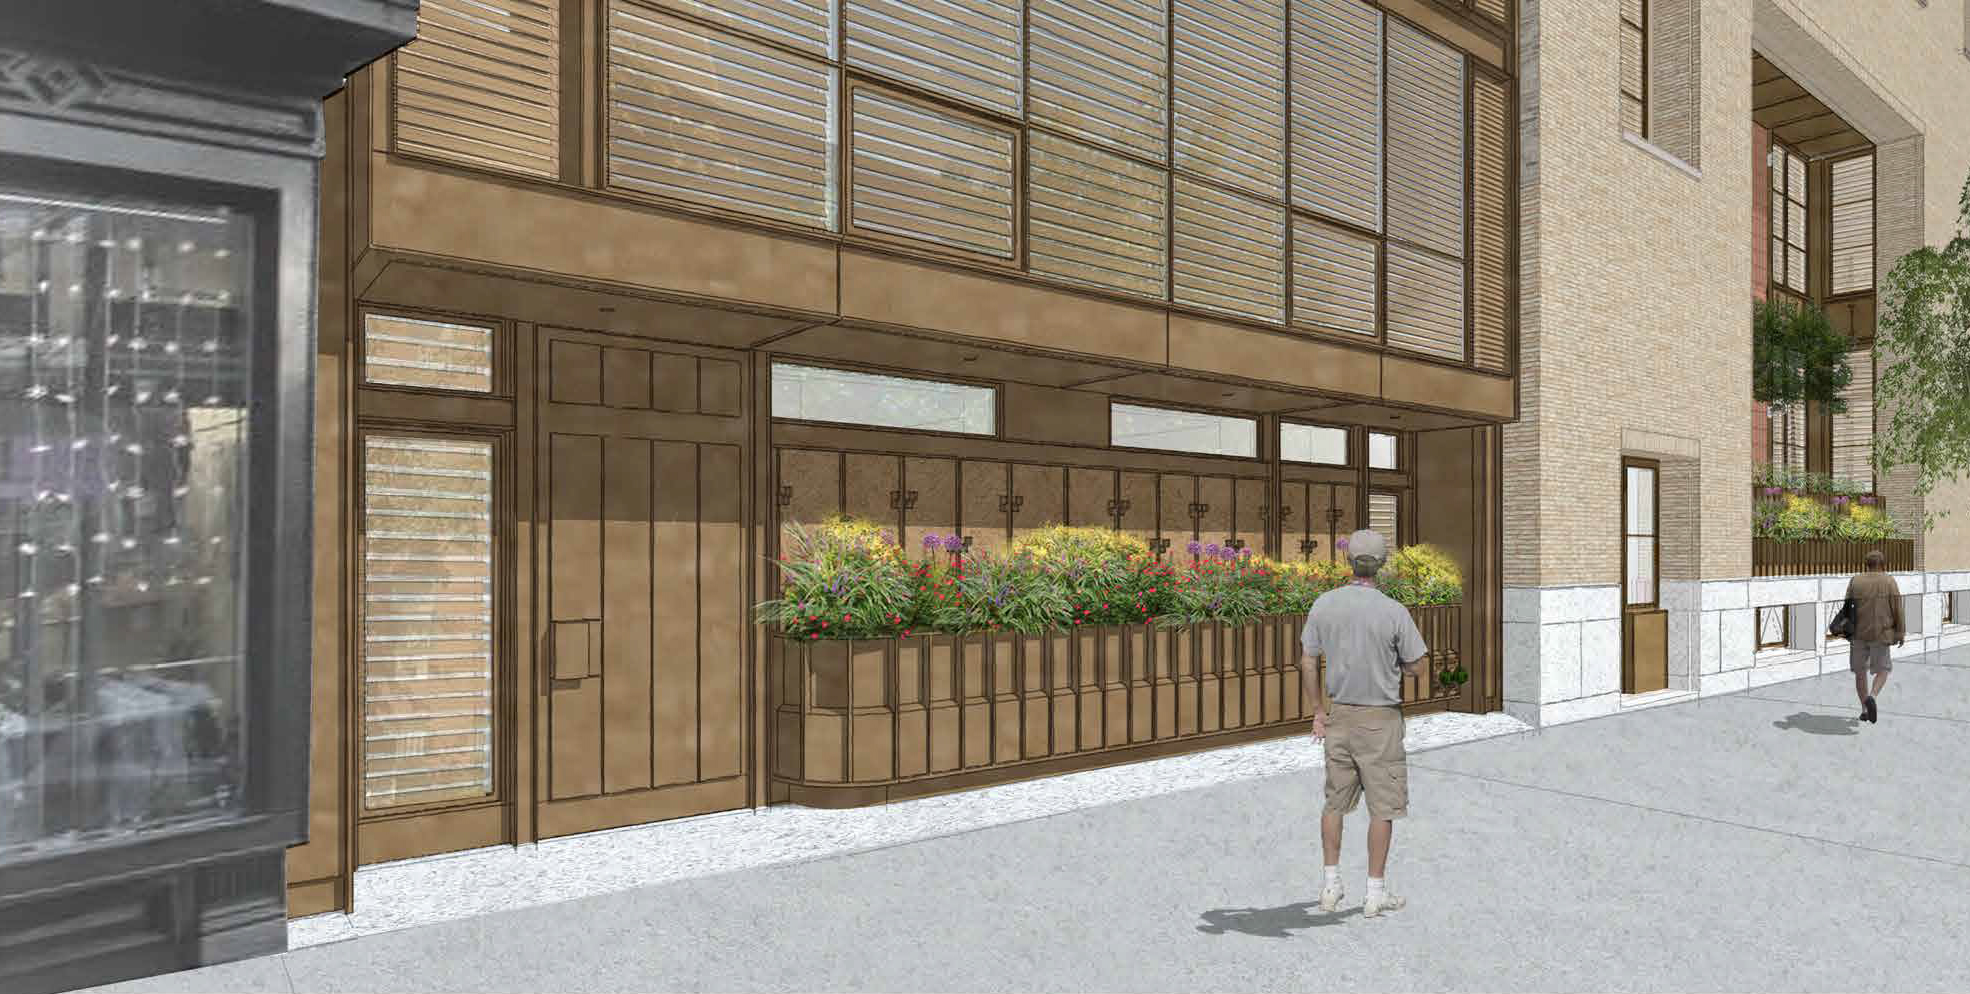 Proposed apartment building entry at 145 Perry Street, a.k.a. 703-711 Washington Street.